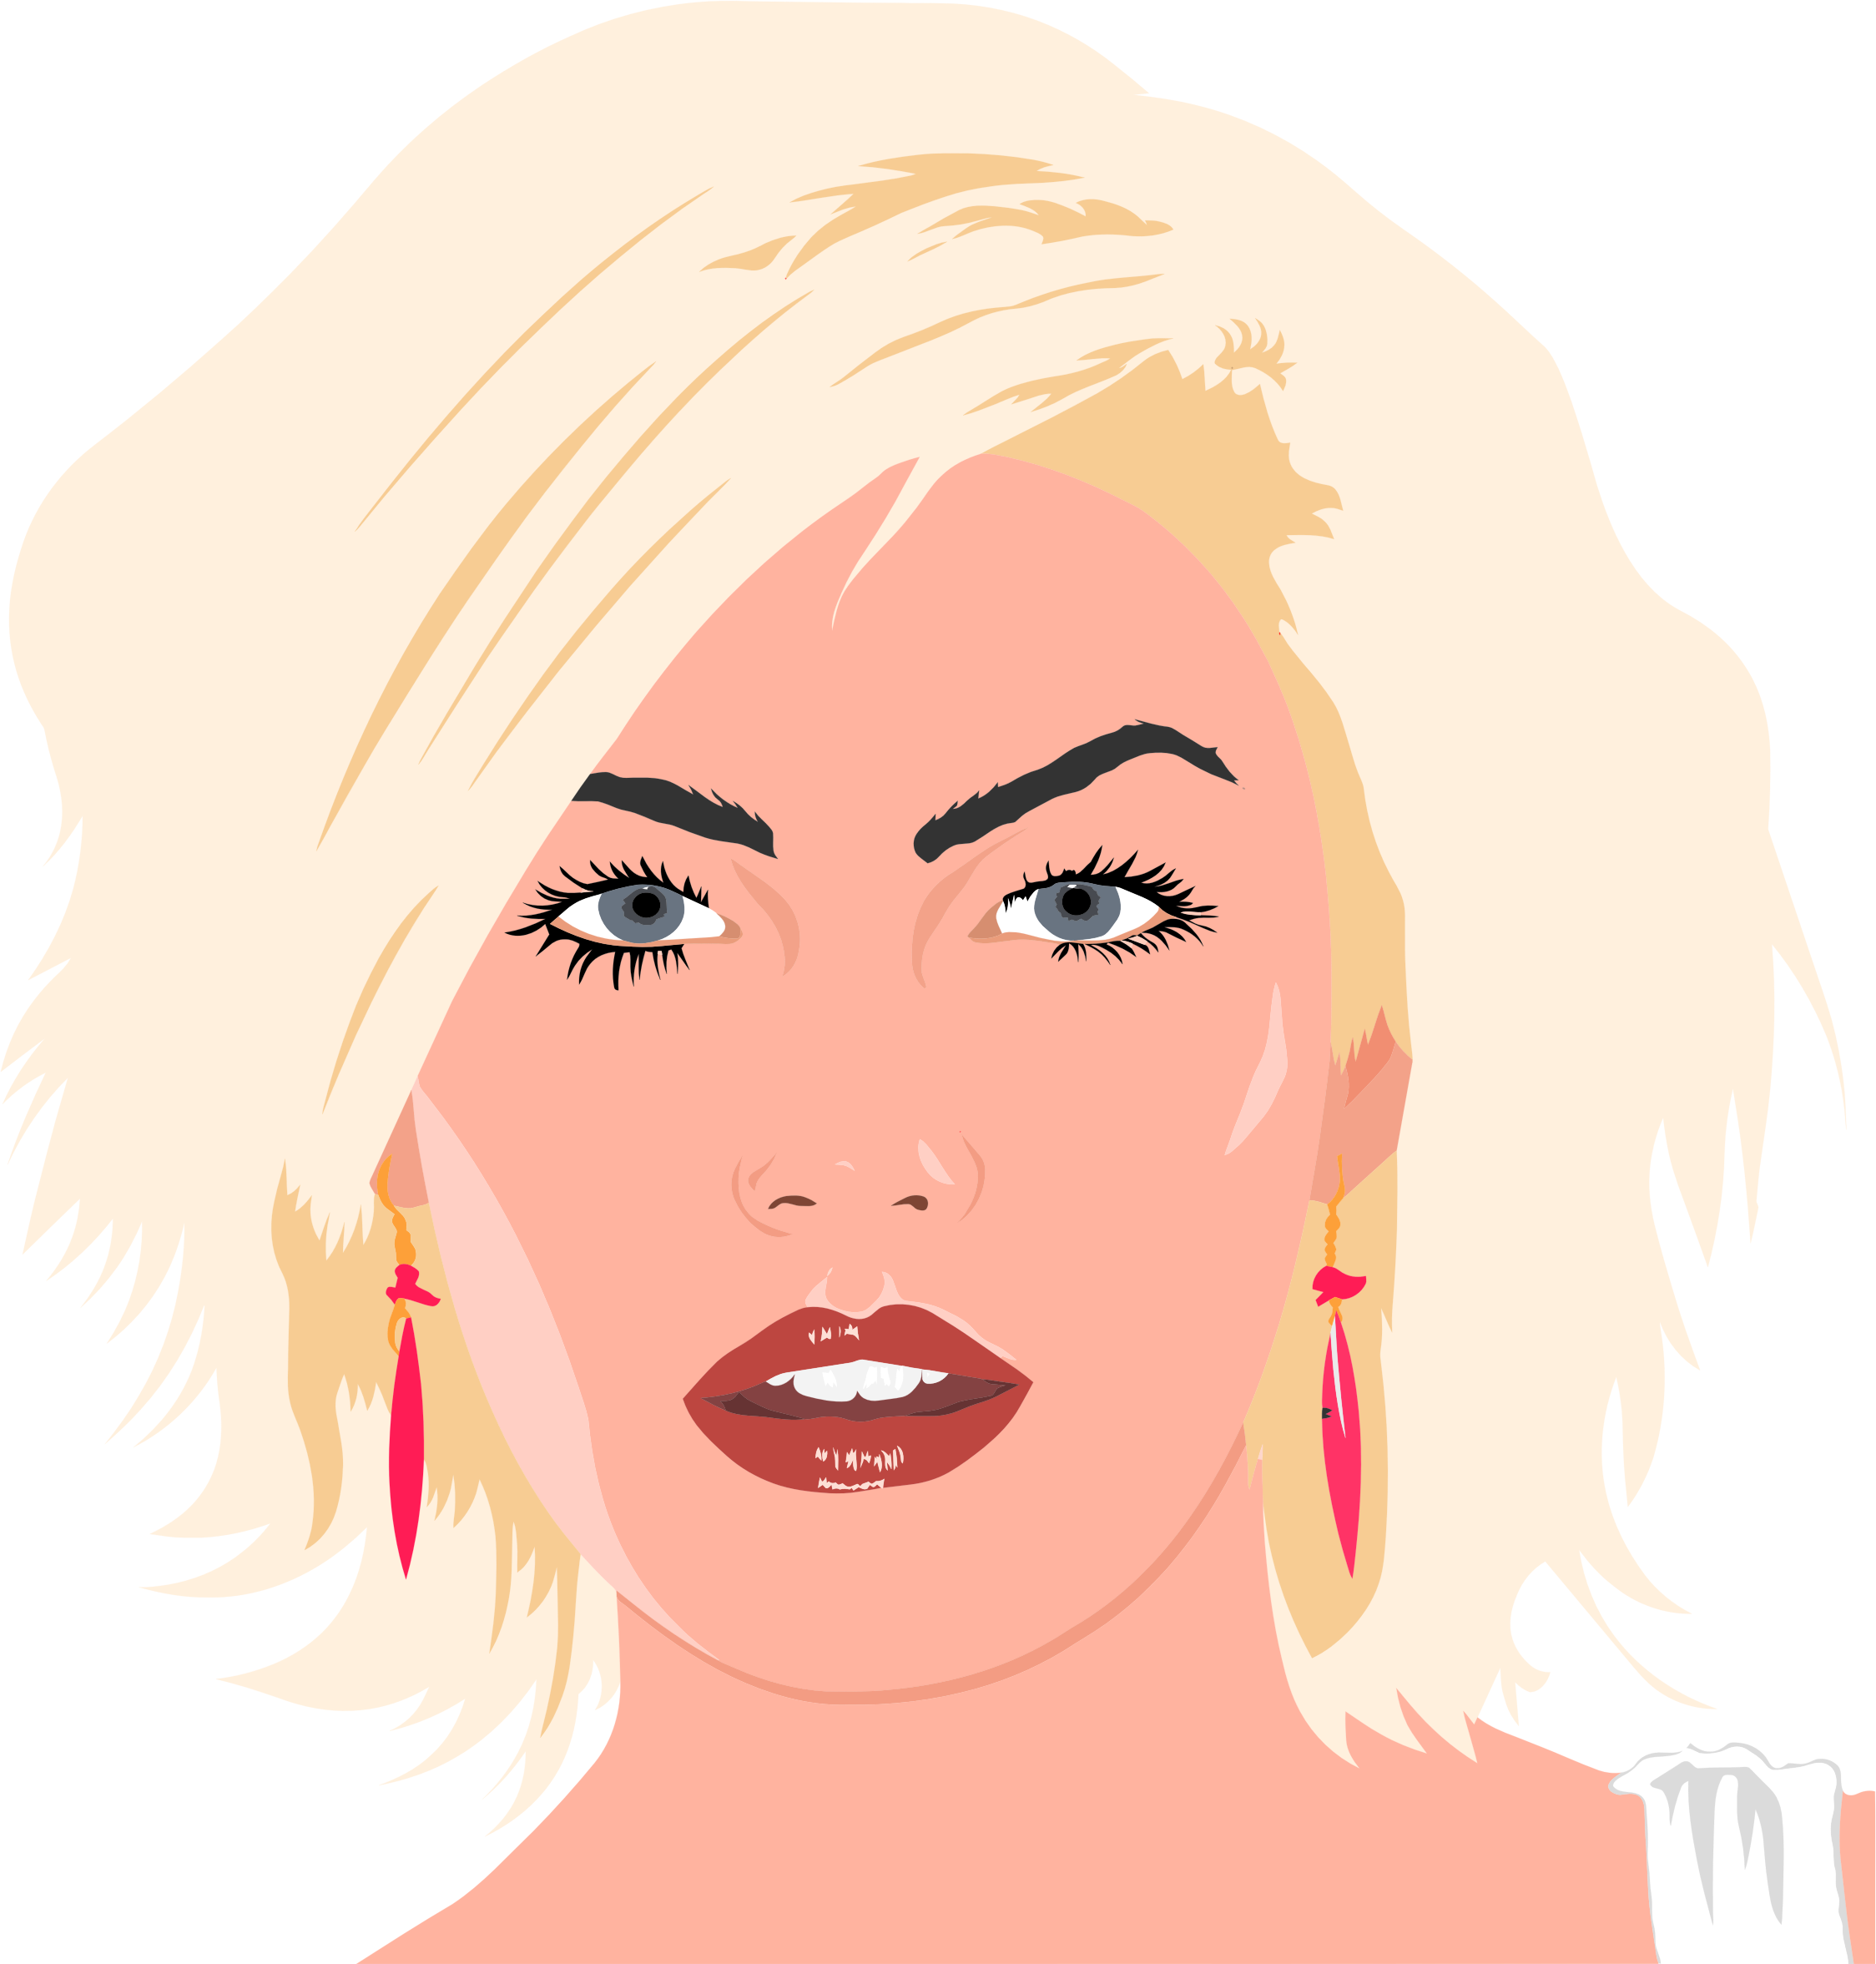 Blonde Woman Portrait Illustration by GDJ